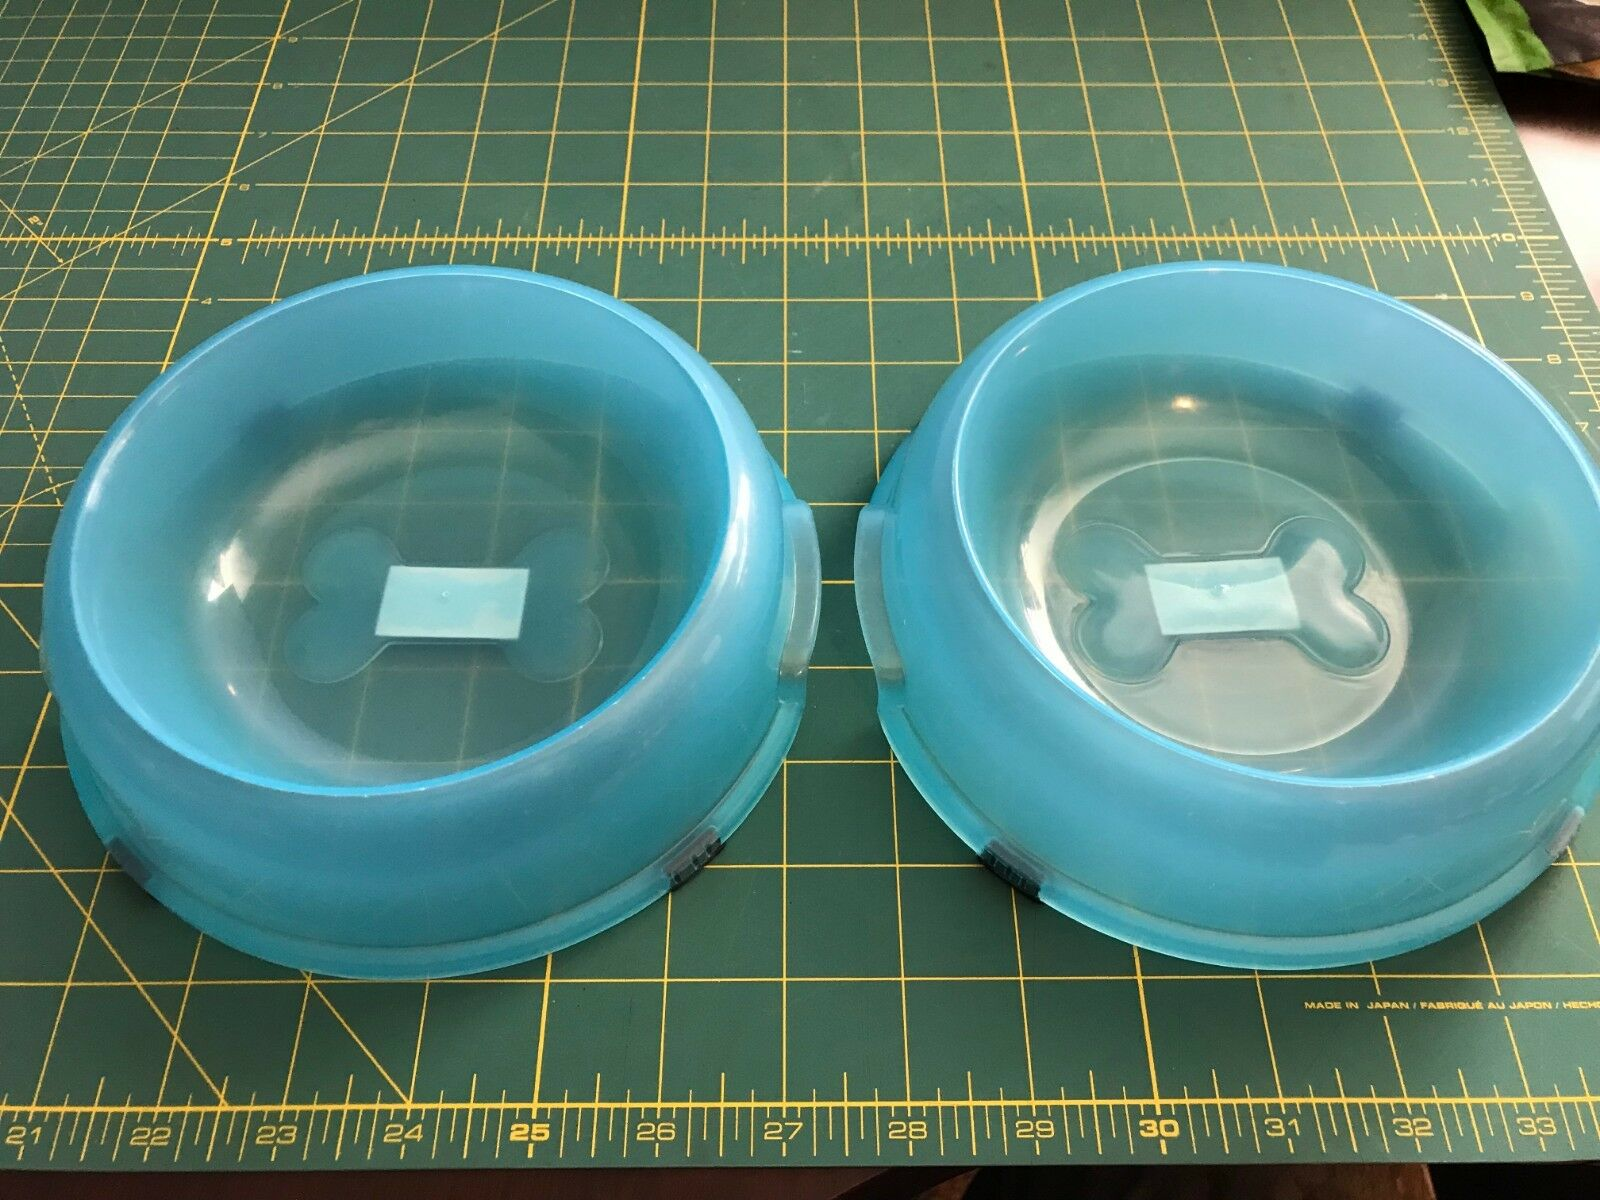 U PICK SETS of 2 Pet Food Water Bowls Neons Pet Studio Dog Cat New Small 2 cup